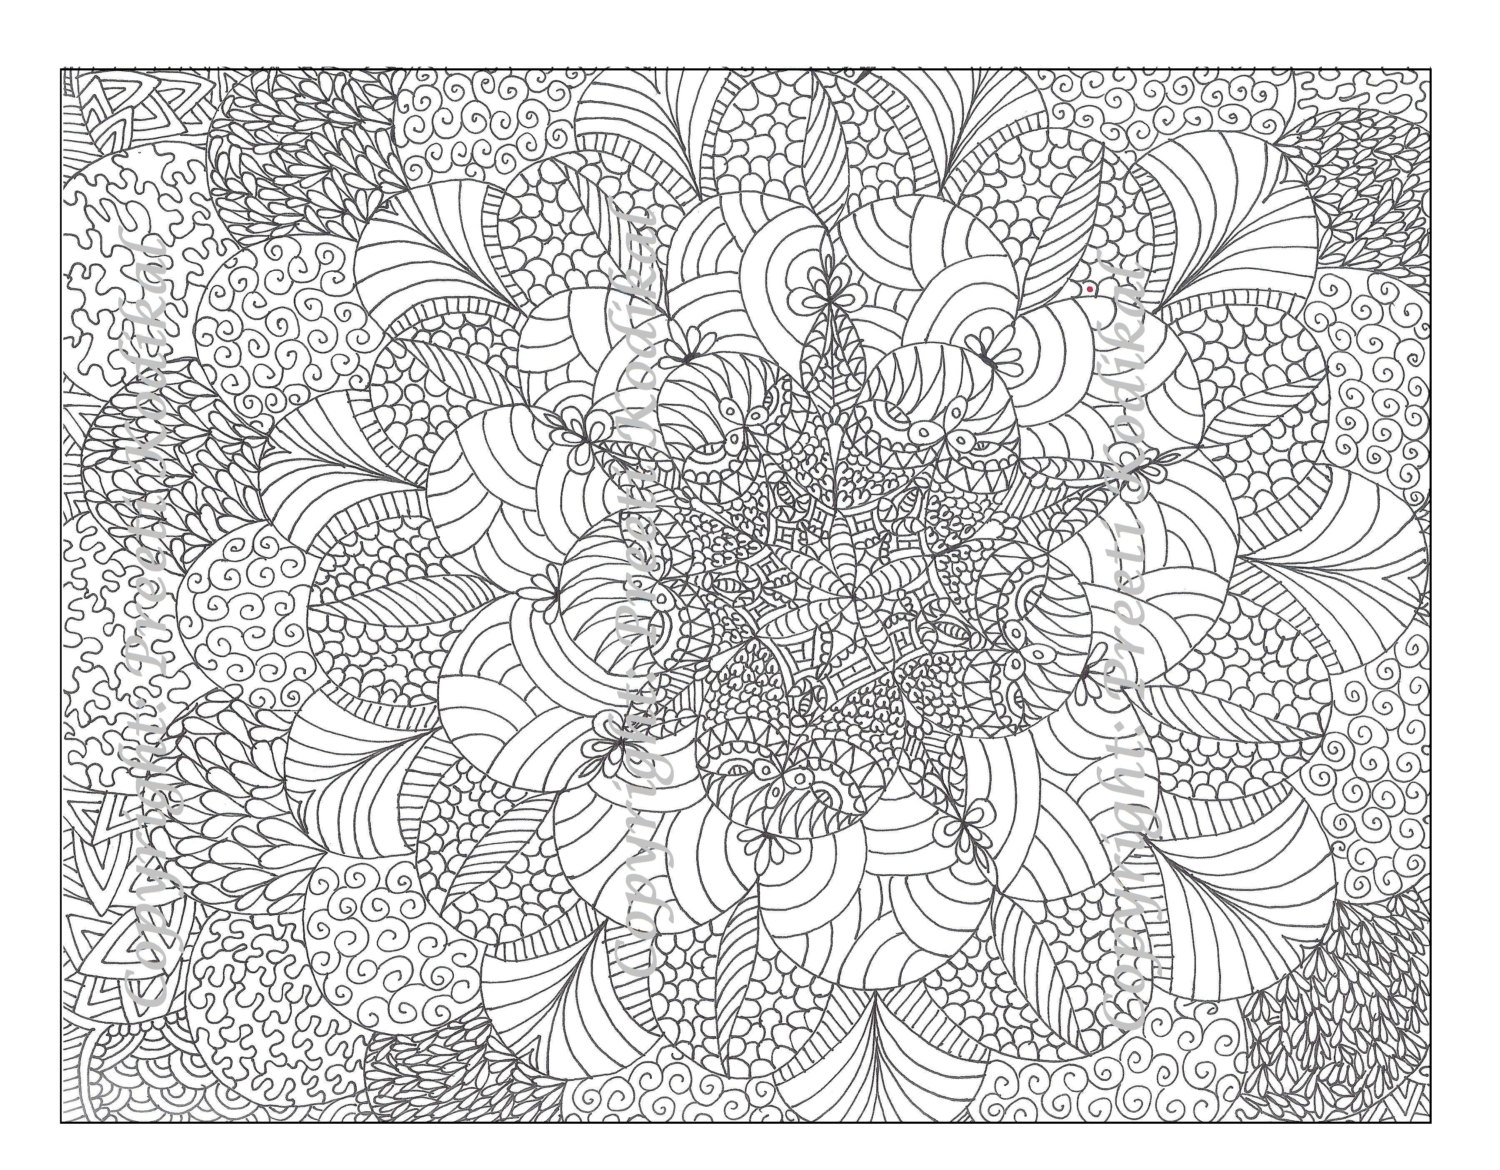 Free printable coloring pages for grown ups - Detailed Coloring Pages Printable